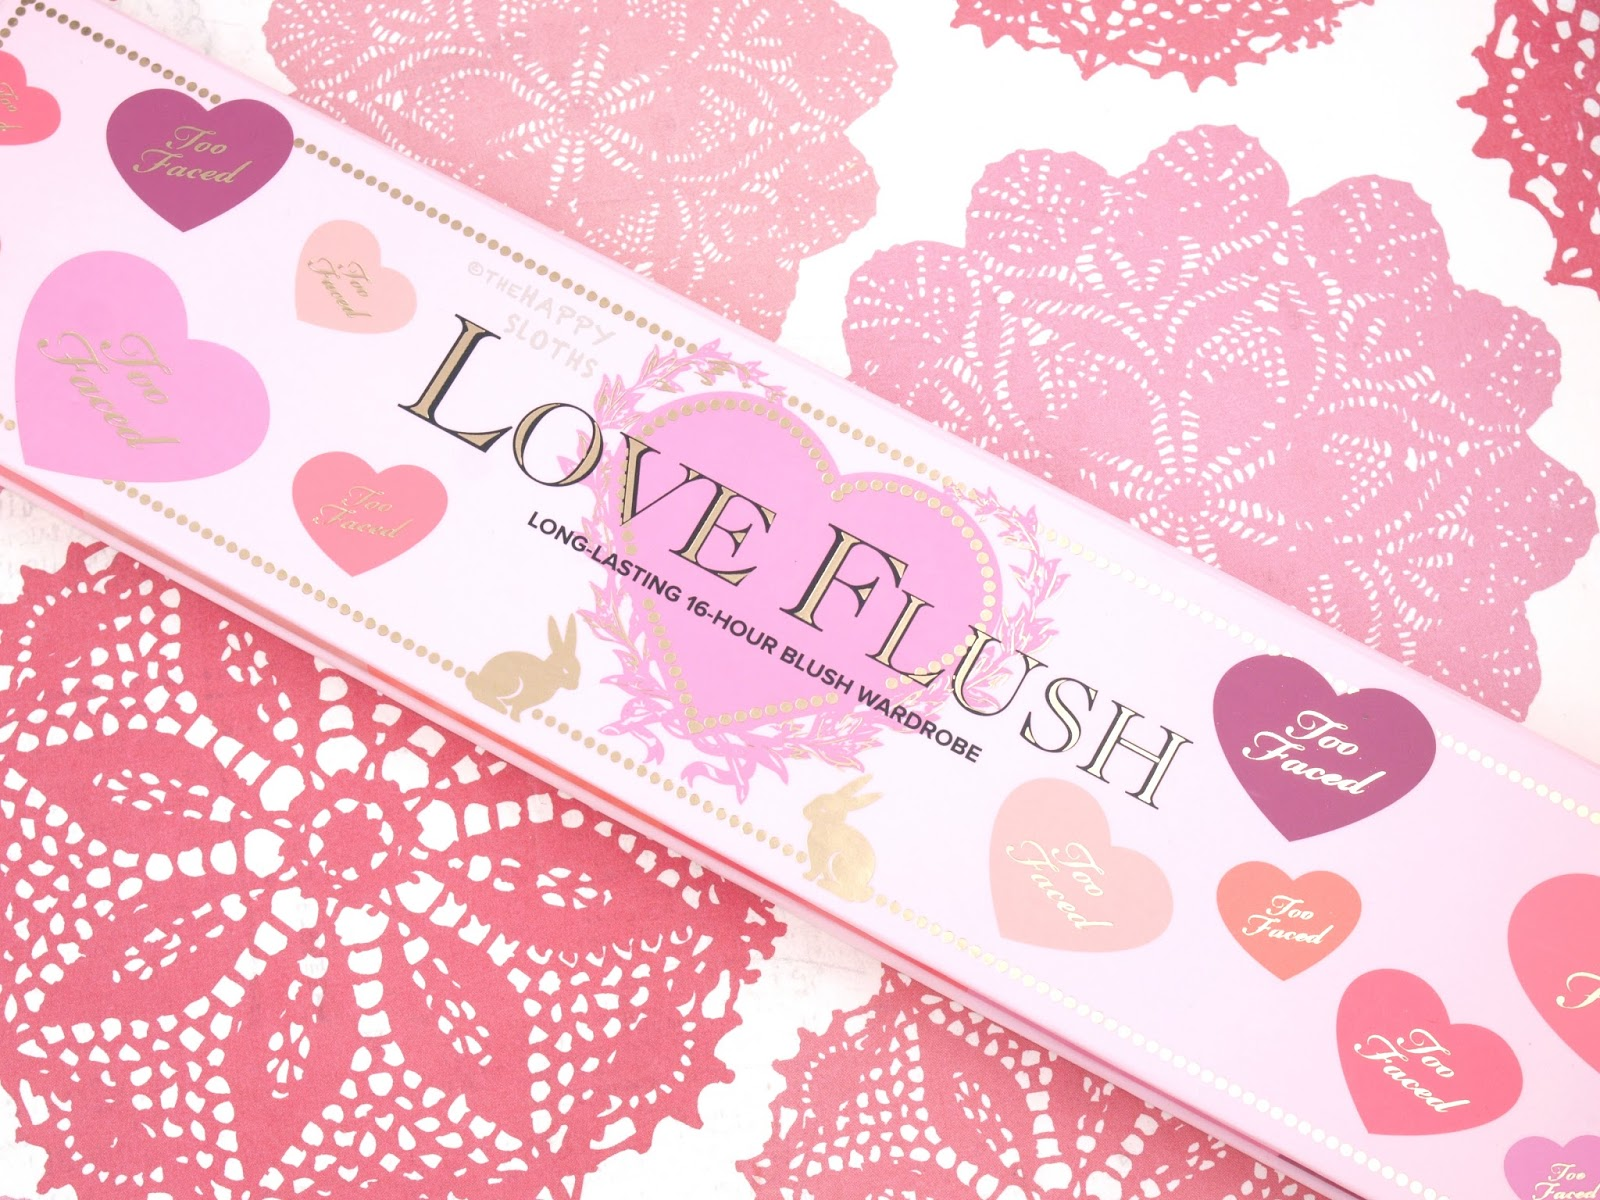 Love Flush Blush Longlasting 16-Hour Blush by Too Faced #9